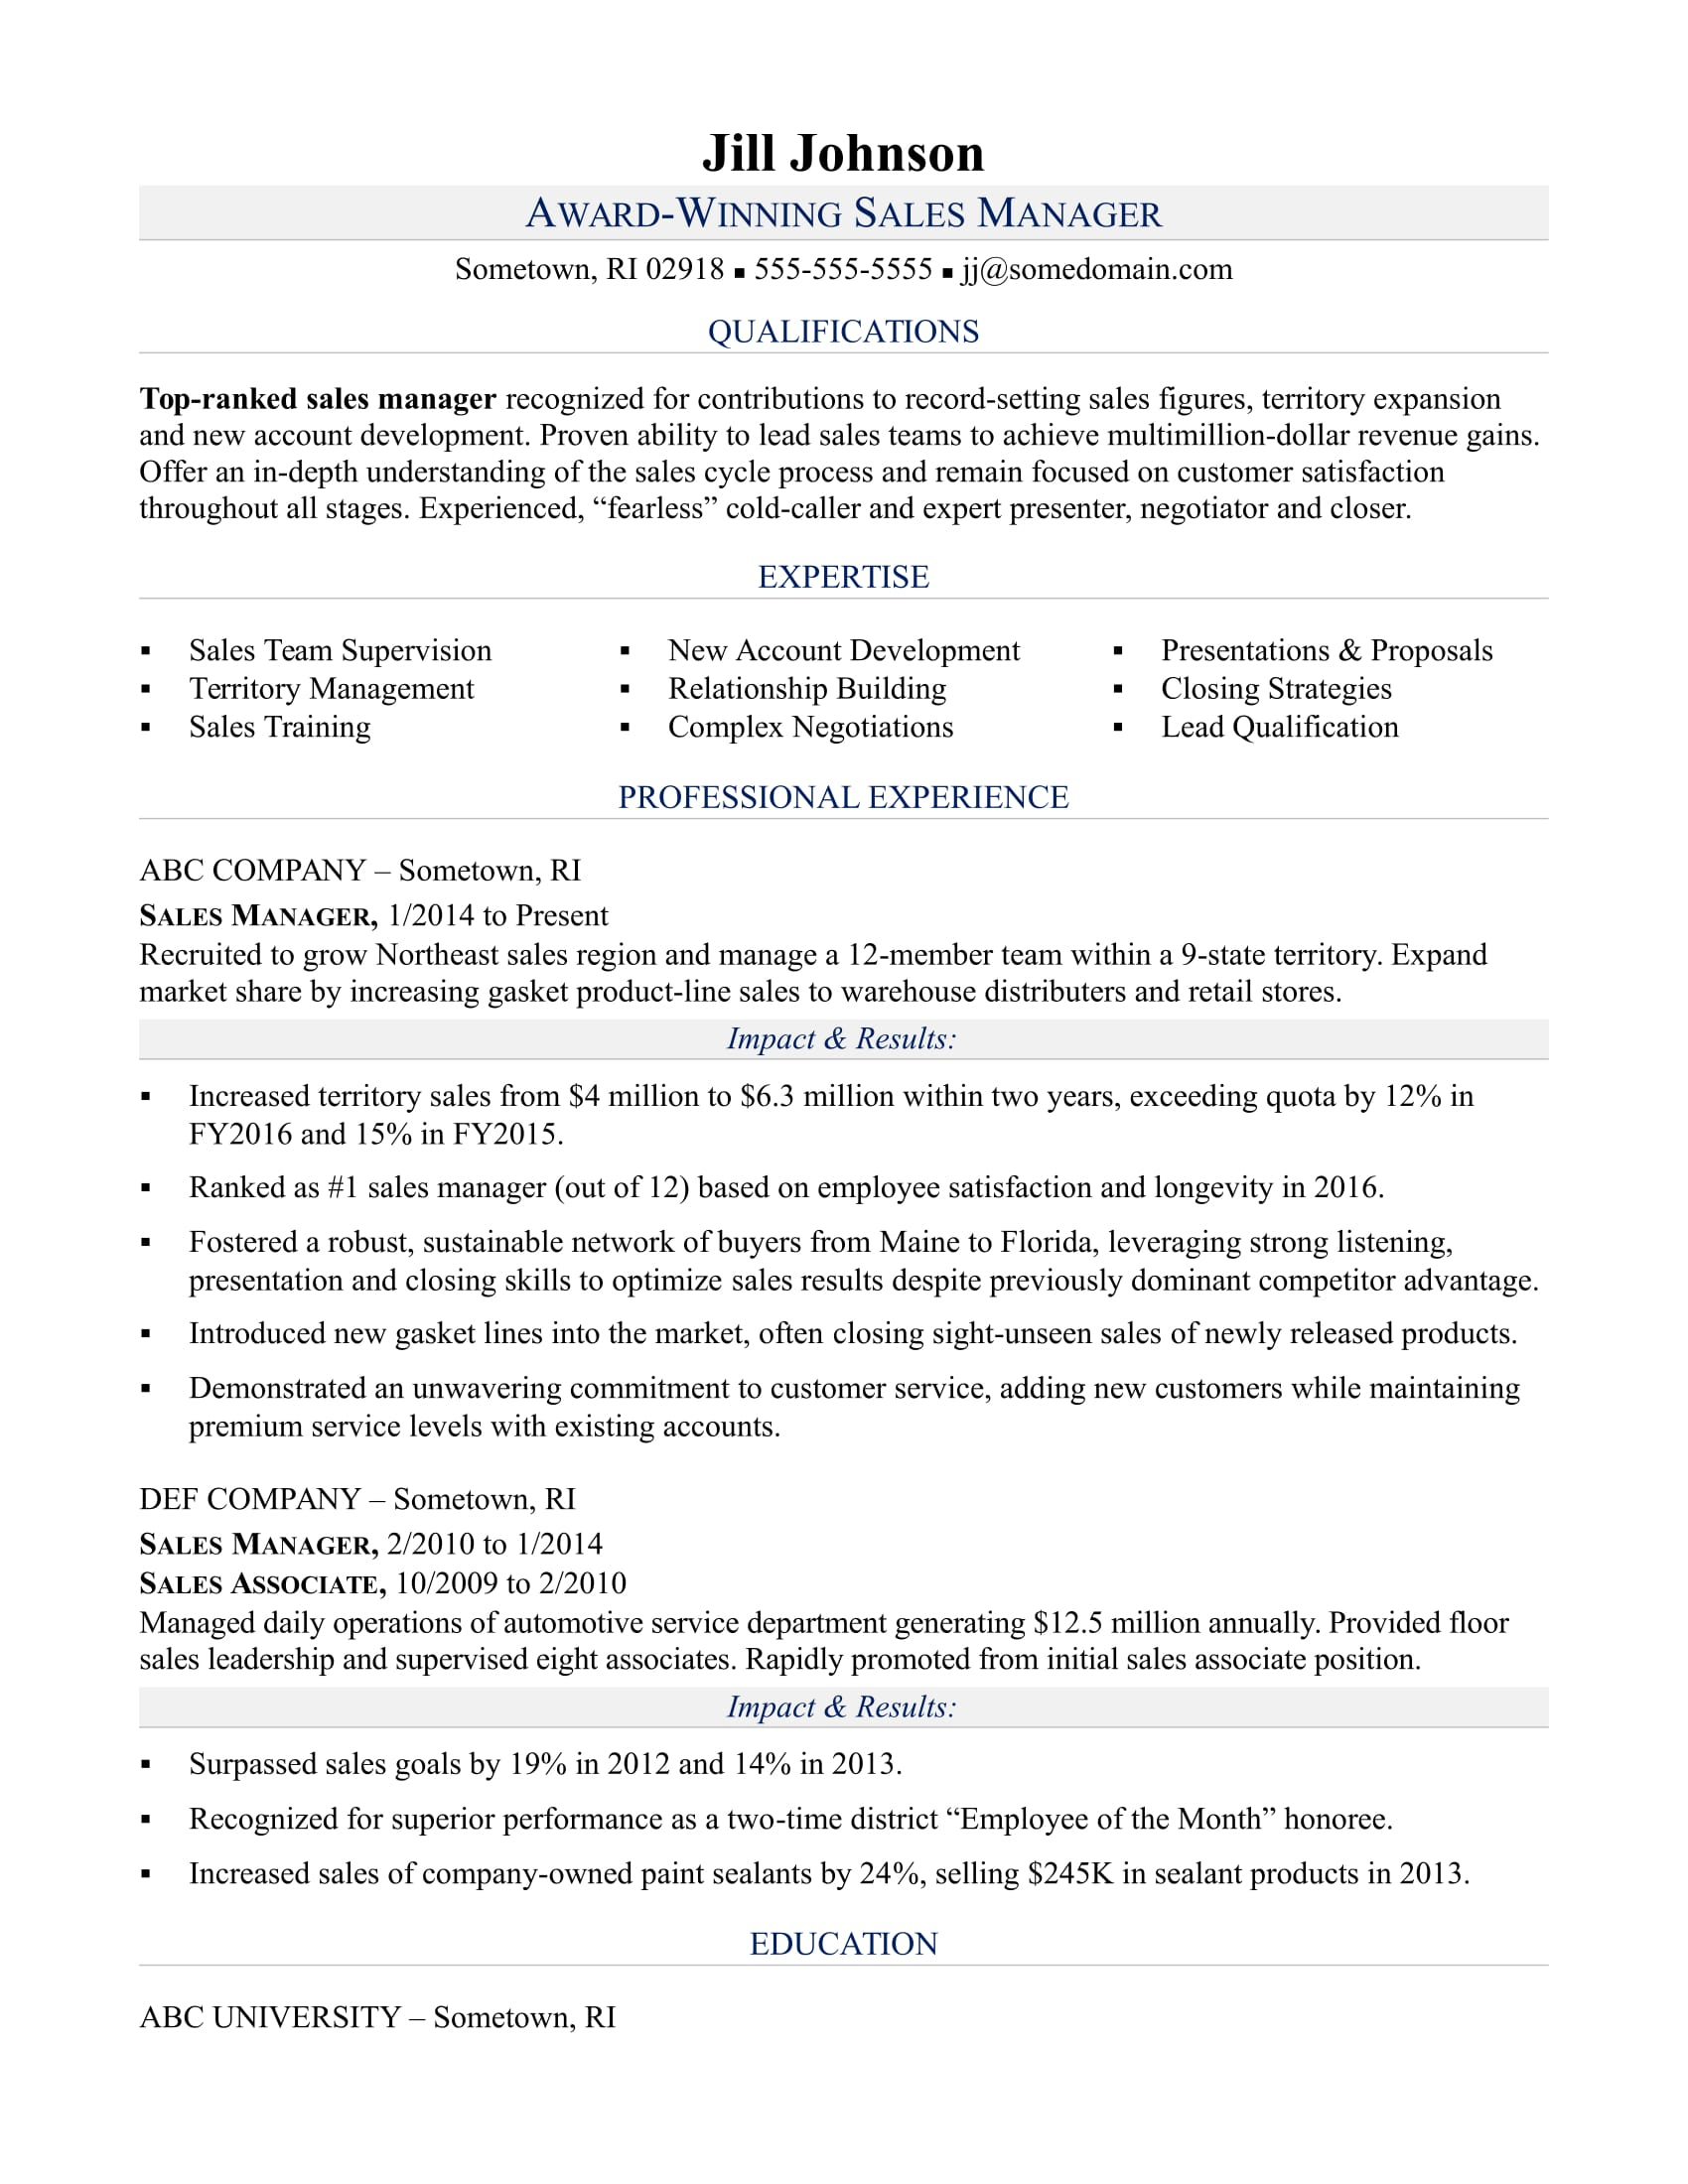 Beau Sample Resume For A Sales Manager